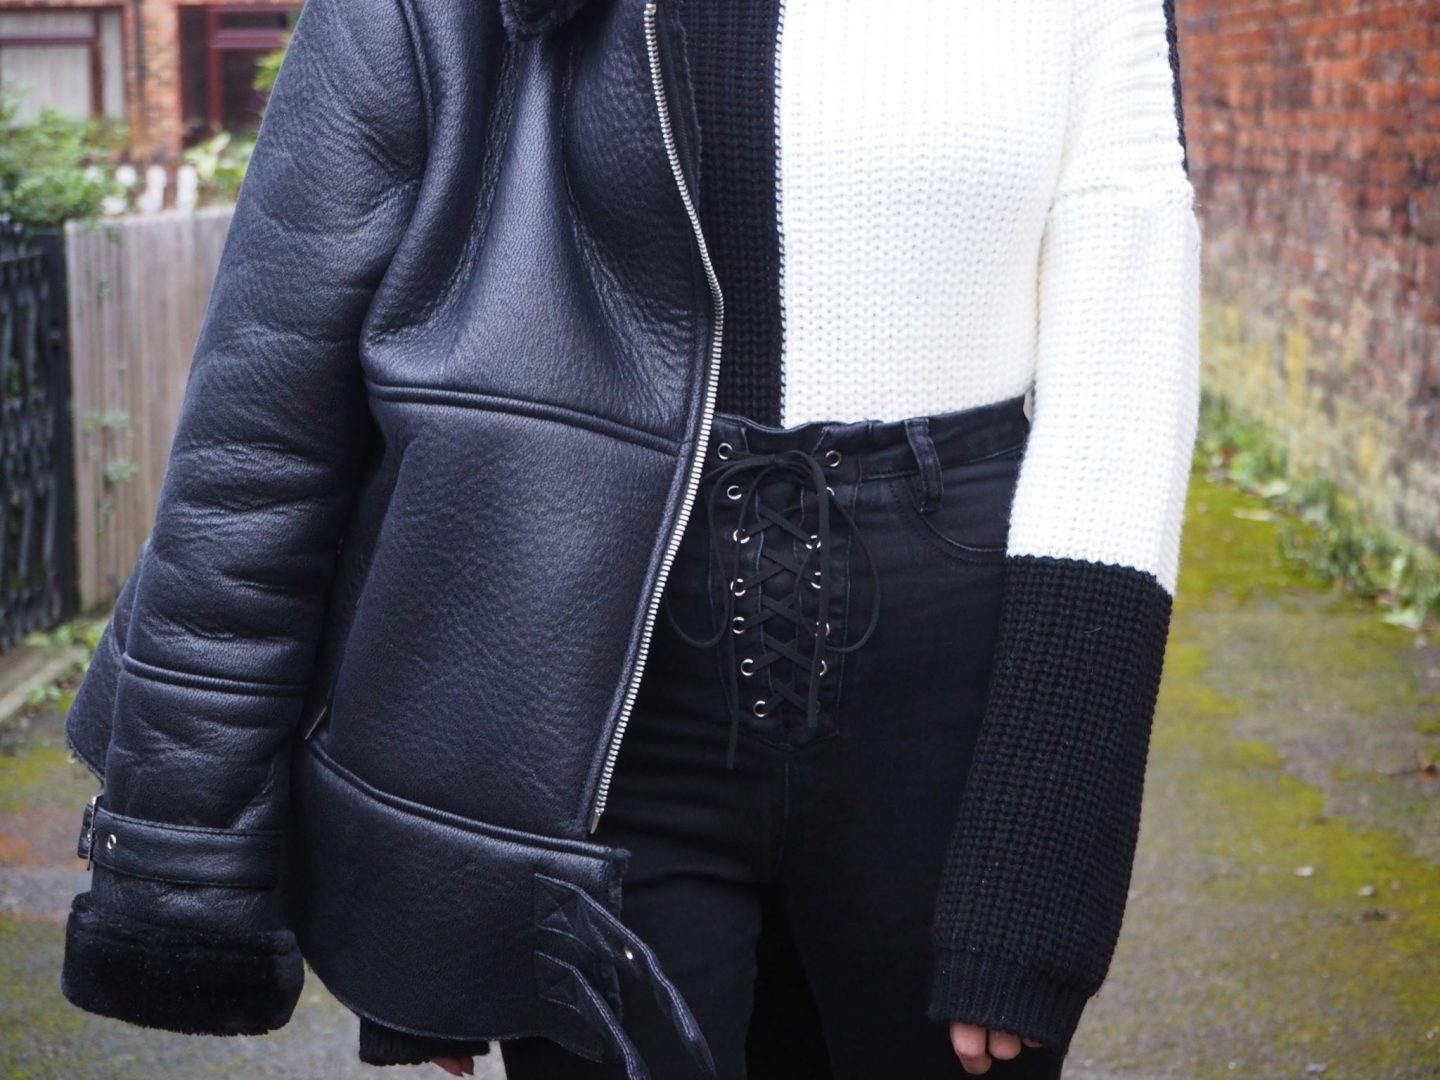 confidence: monochrome outfit close up